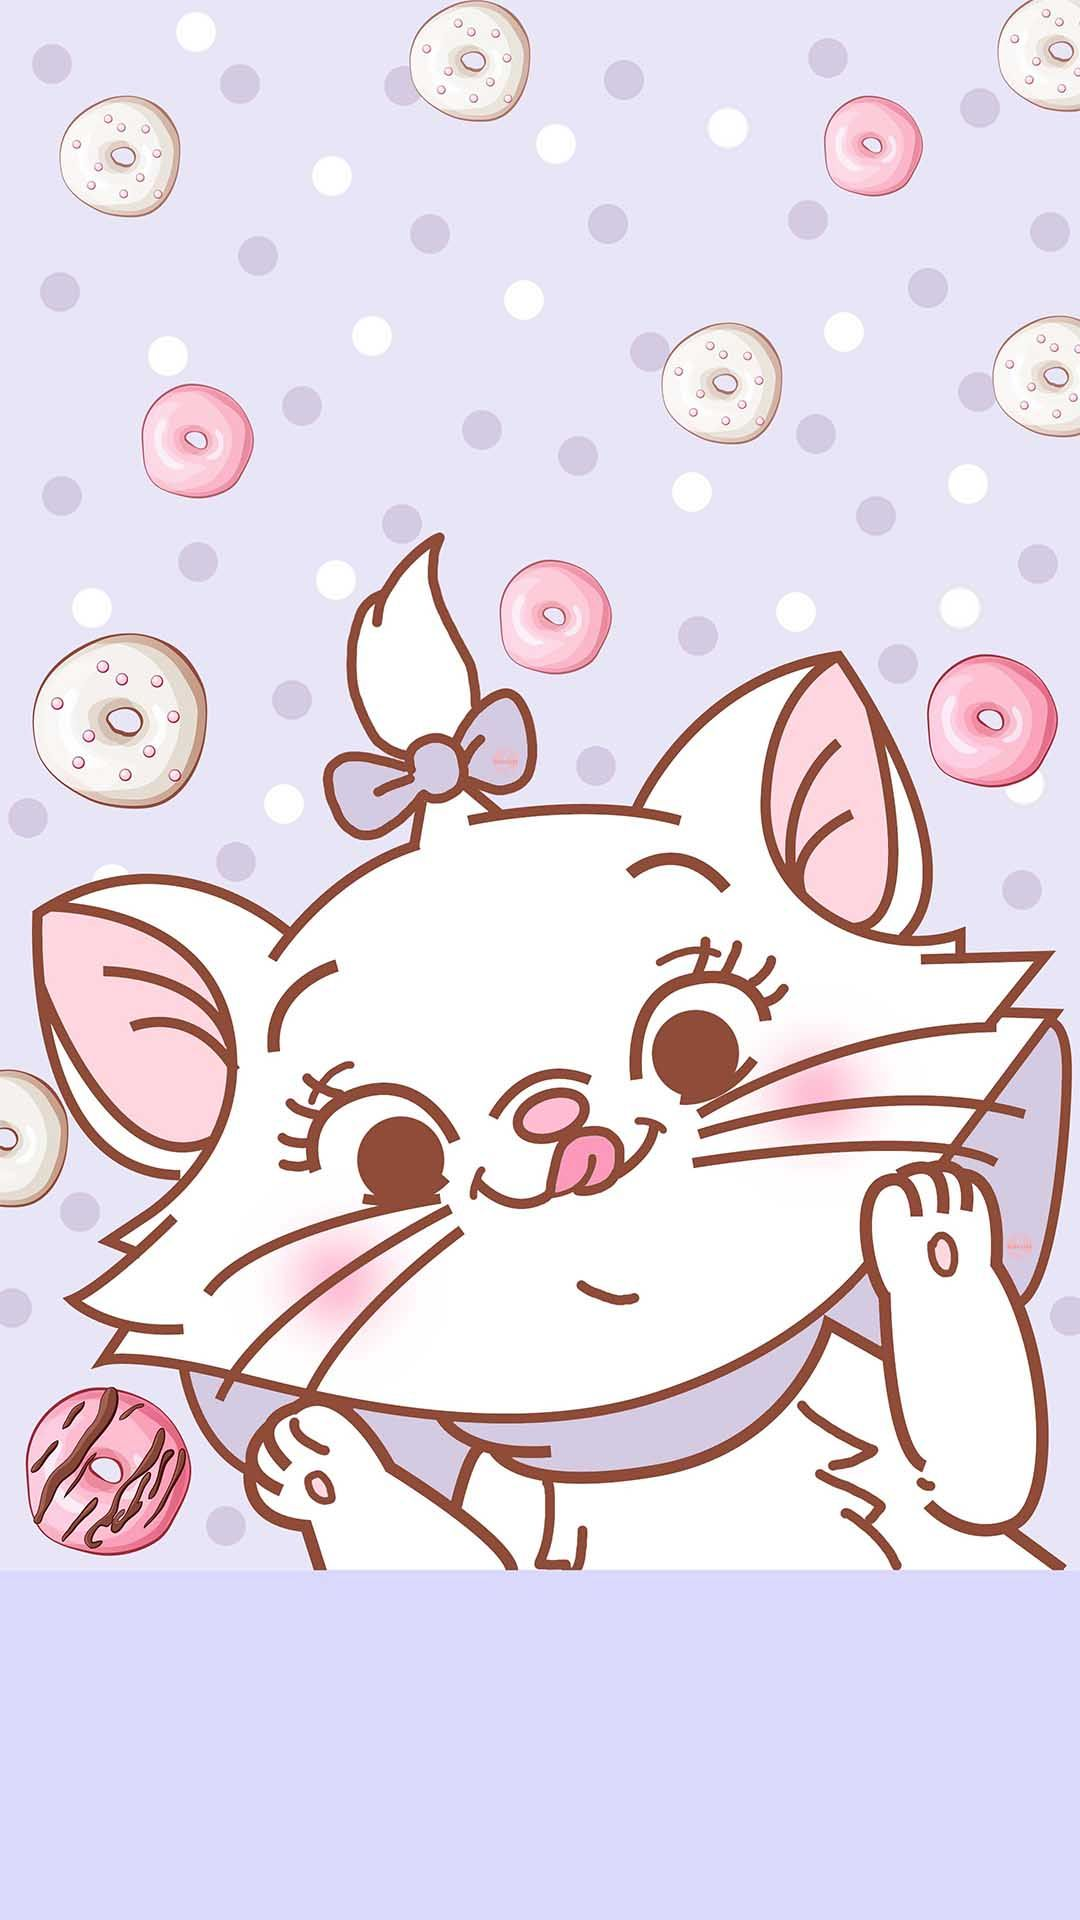 Simple Wallpaper Hello Kitty Donut - 7b903f3999dc4a5c5f601682c2ece352  Perfect Image Reference_347517.jpg